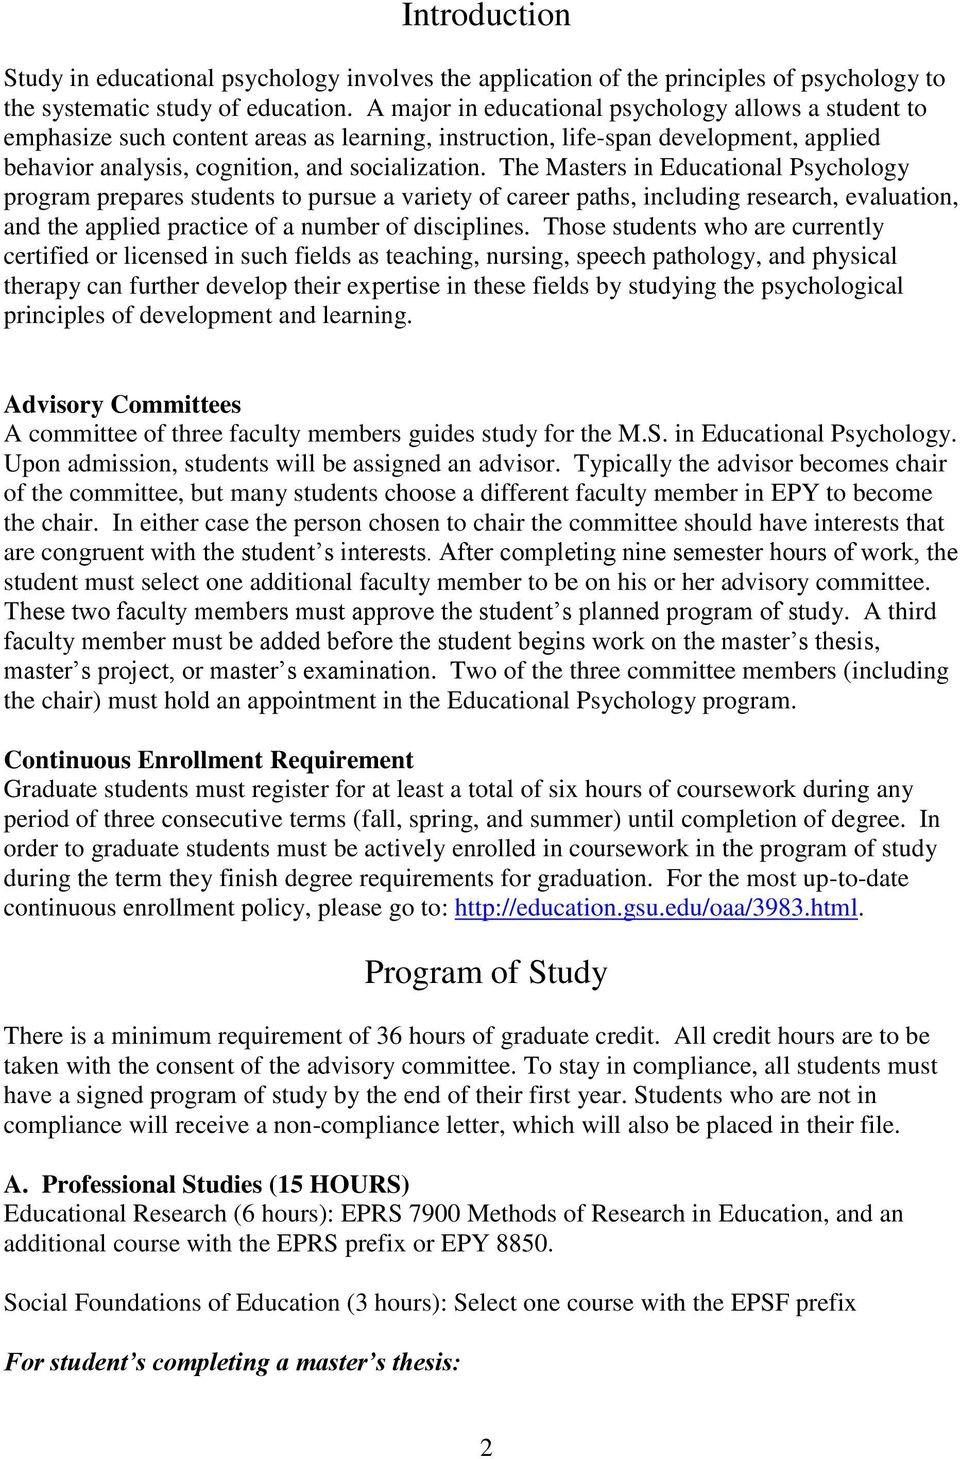 The Masters in Educational Psychology program prepares students to pursue a variety of career paths, including research, evaluation, and the applied practice of a number of disciplines.